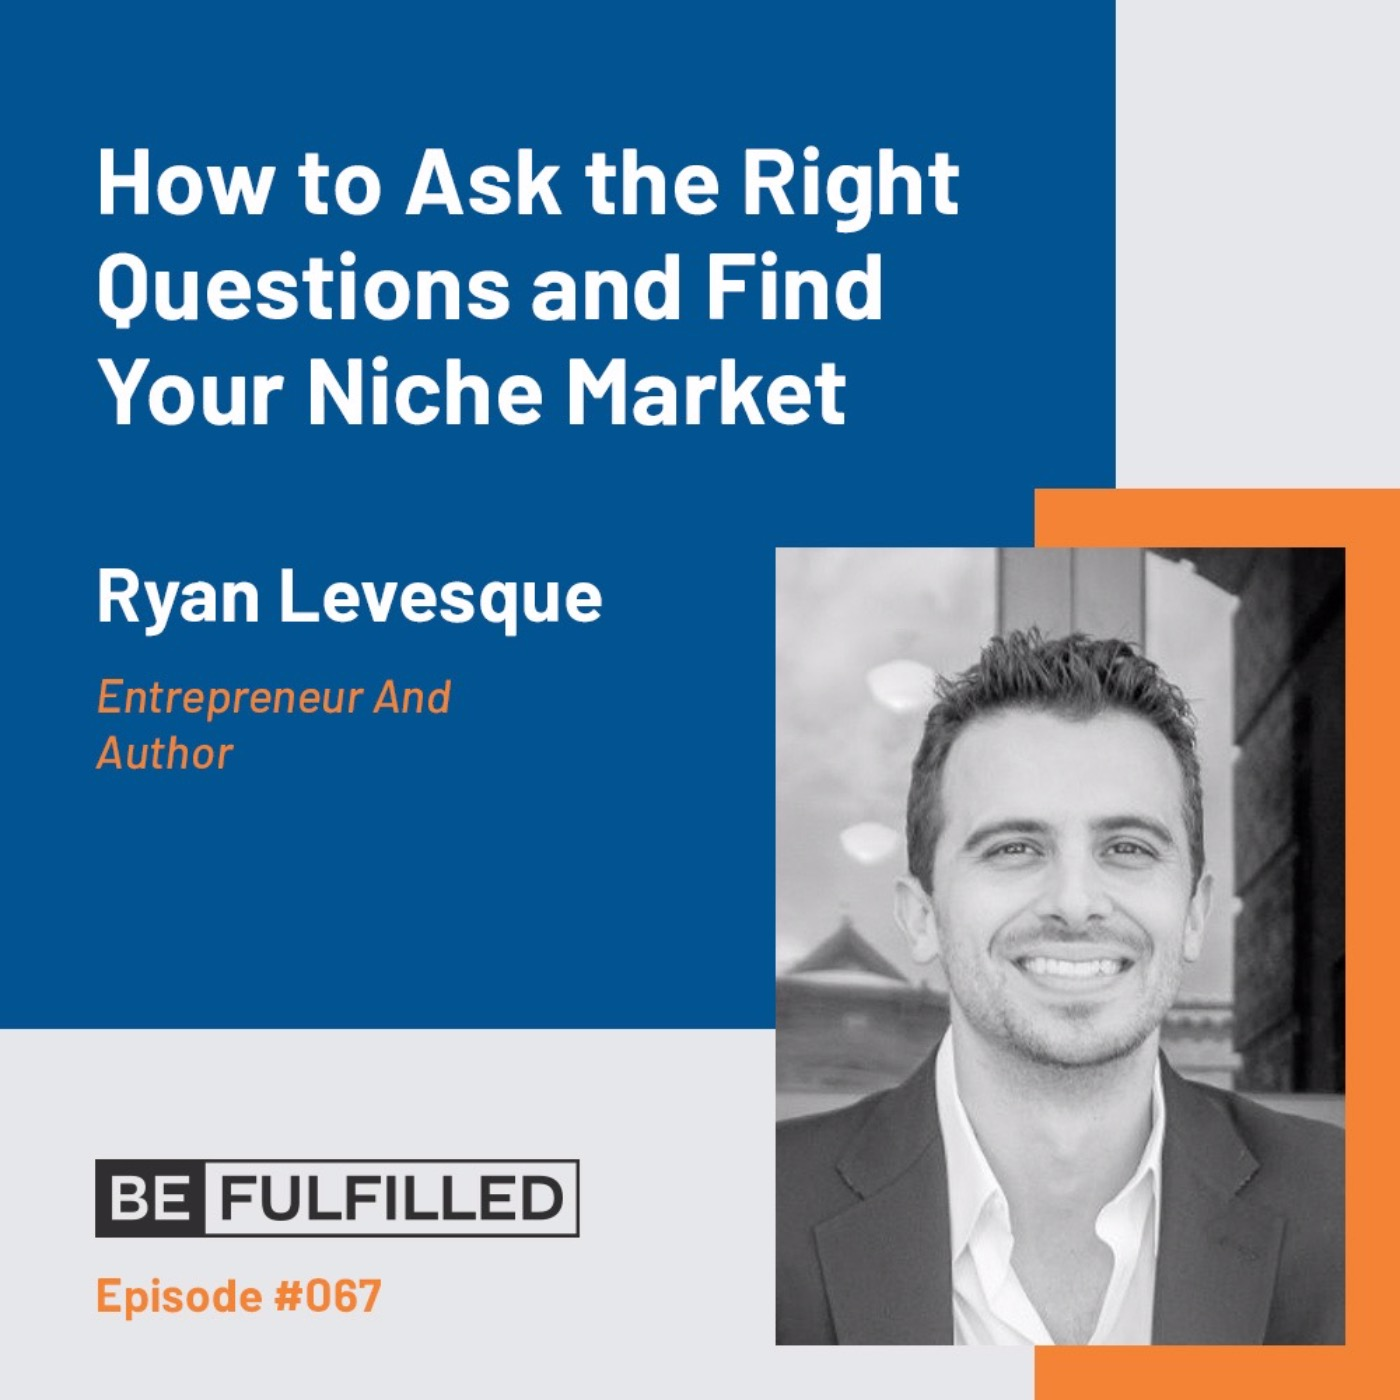 How To Find Your Niche Market - Ryan Levesque